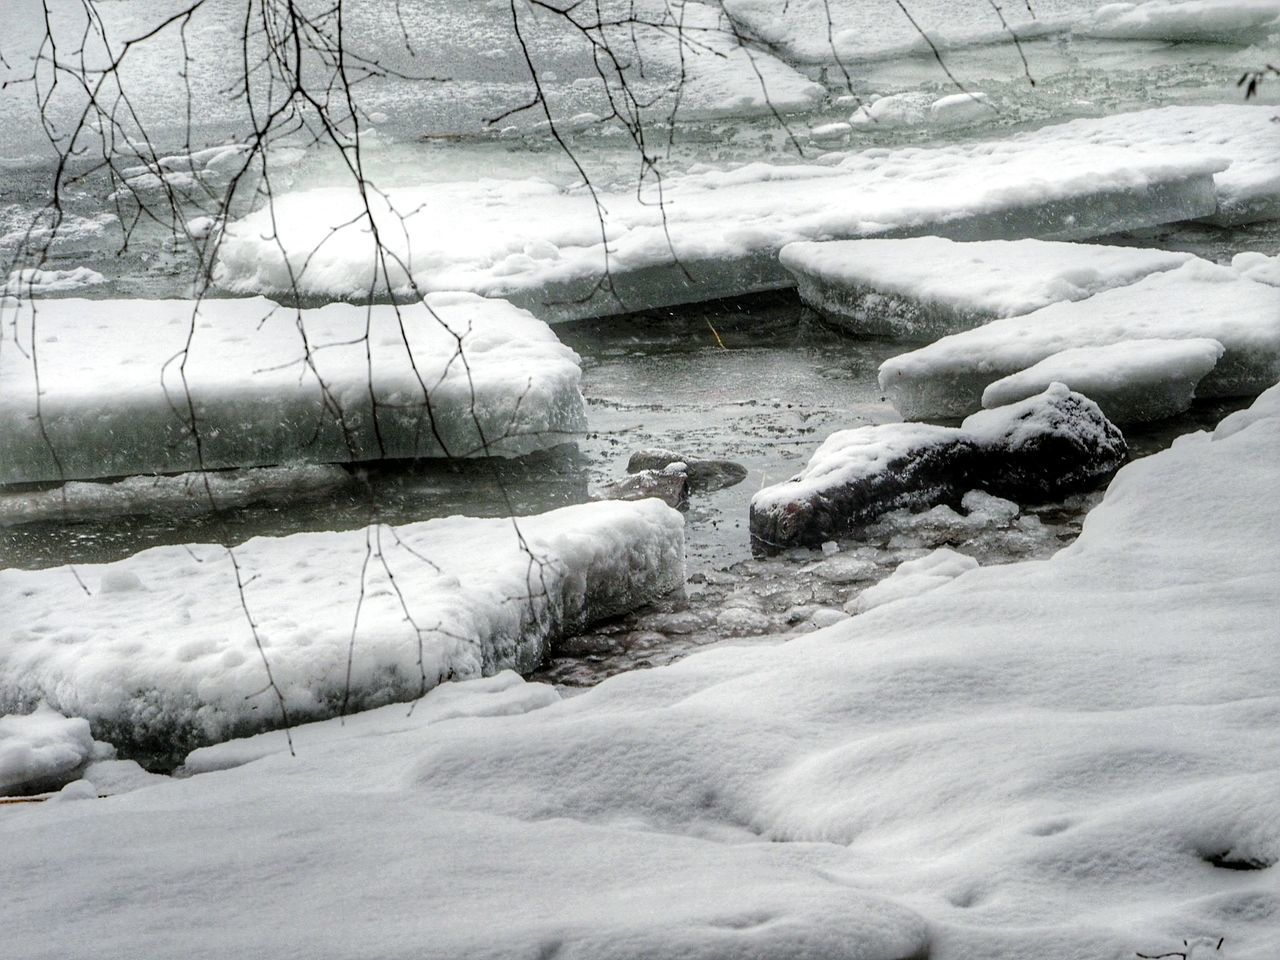 Nature Outdoors Tranquility Ice Extreme Weather Winter Time Winter Nature Outside Frozen Snow Cold Temperature Winter Beauty In Nature Lake Icedwater